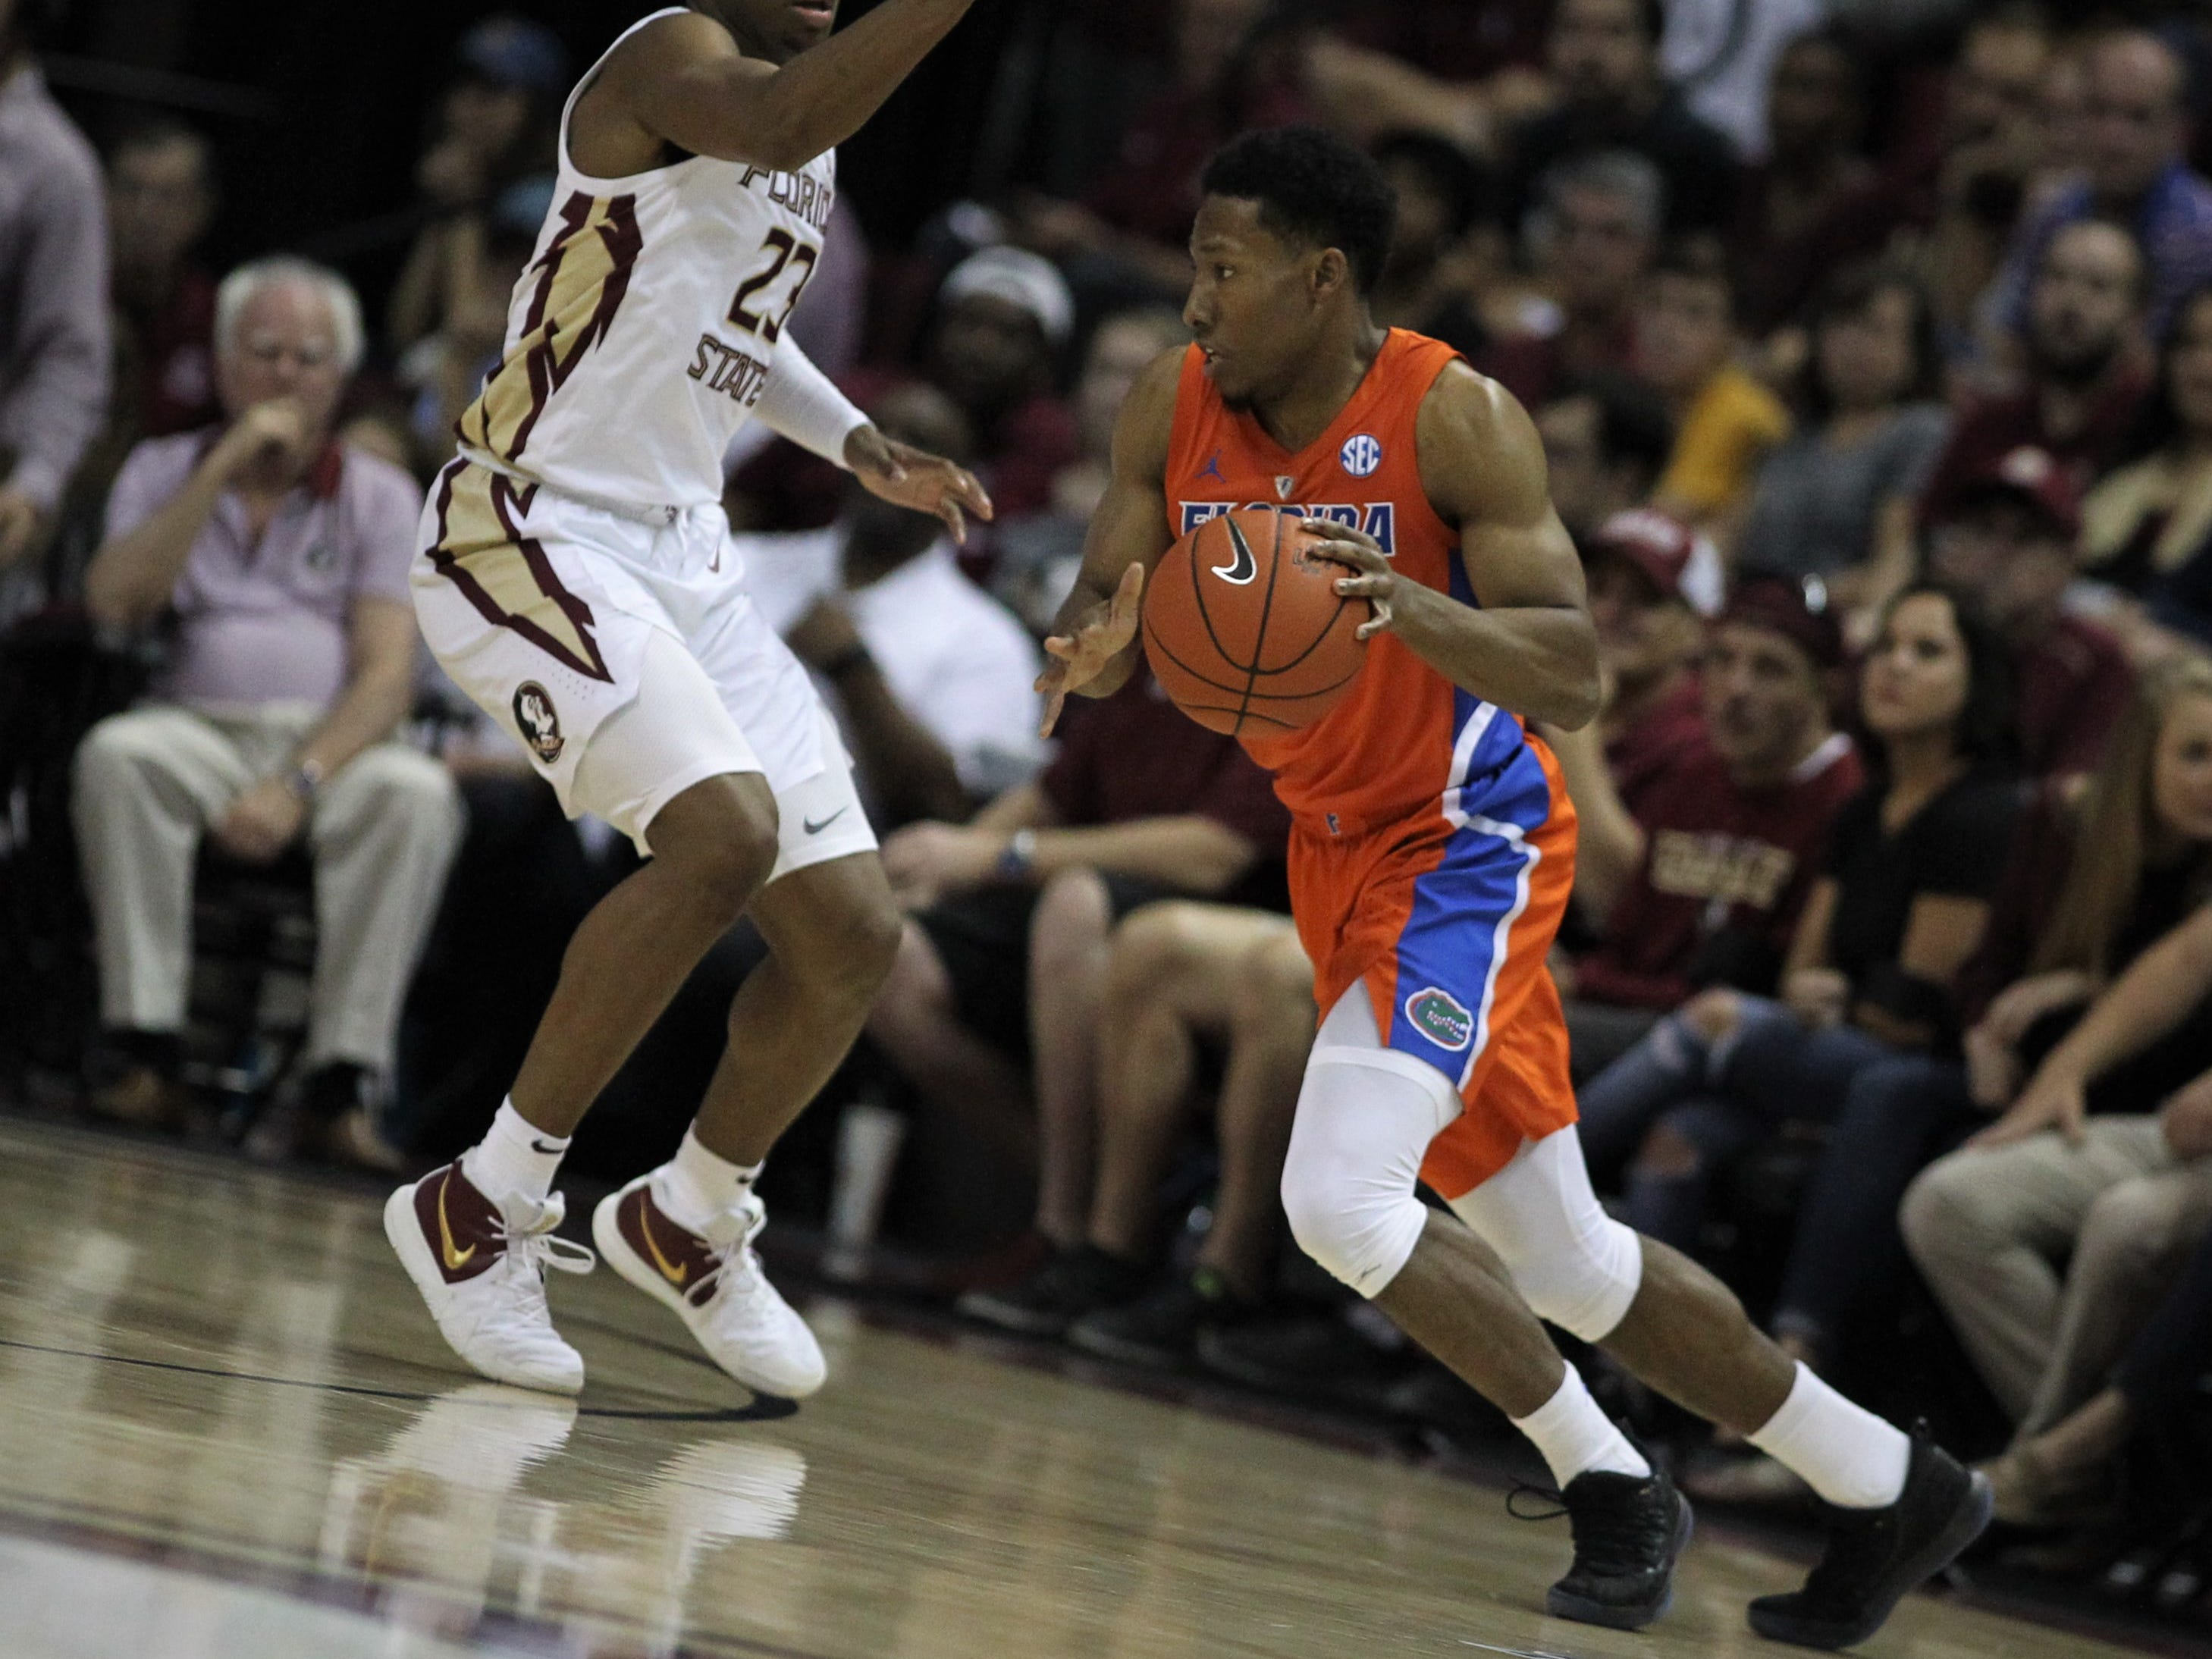 Florida's Jalen Hudson drives against Florida State's M.J. Walker during the Sunshine Showdown game Tuesday at the Tucker Civic Center.